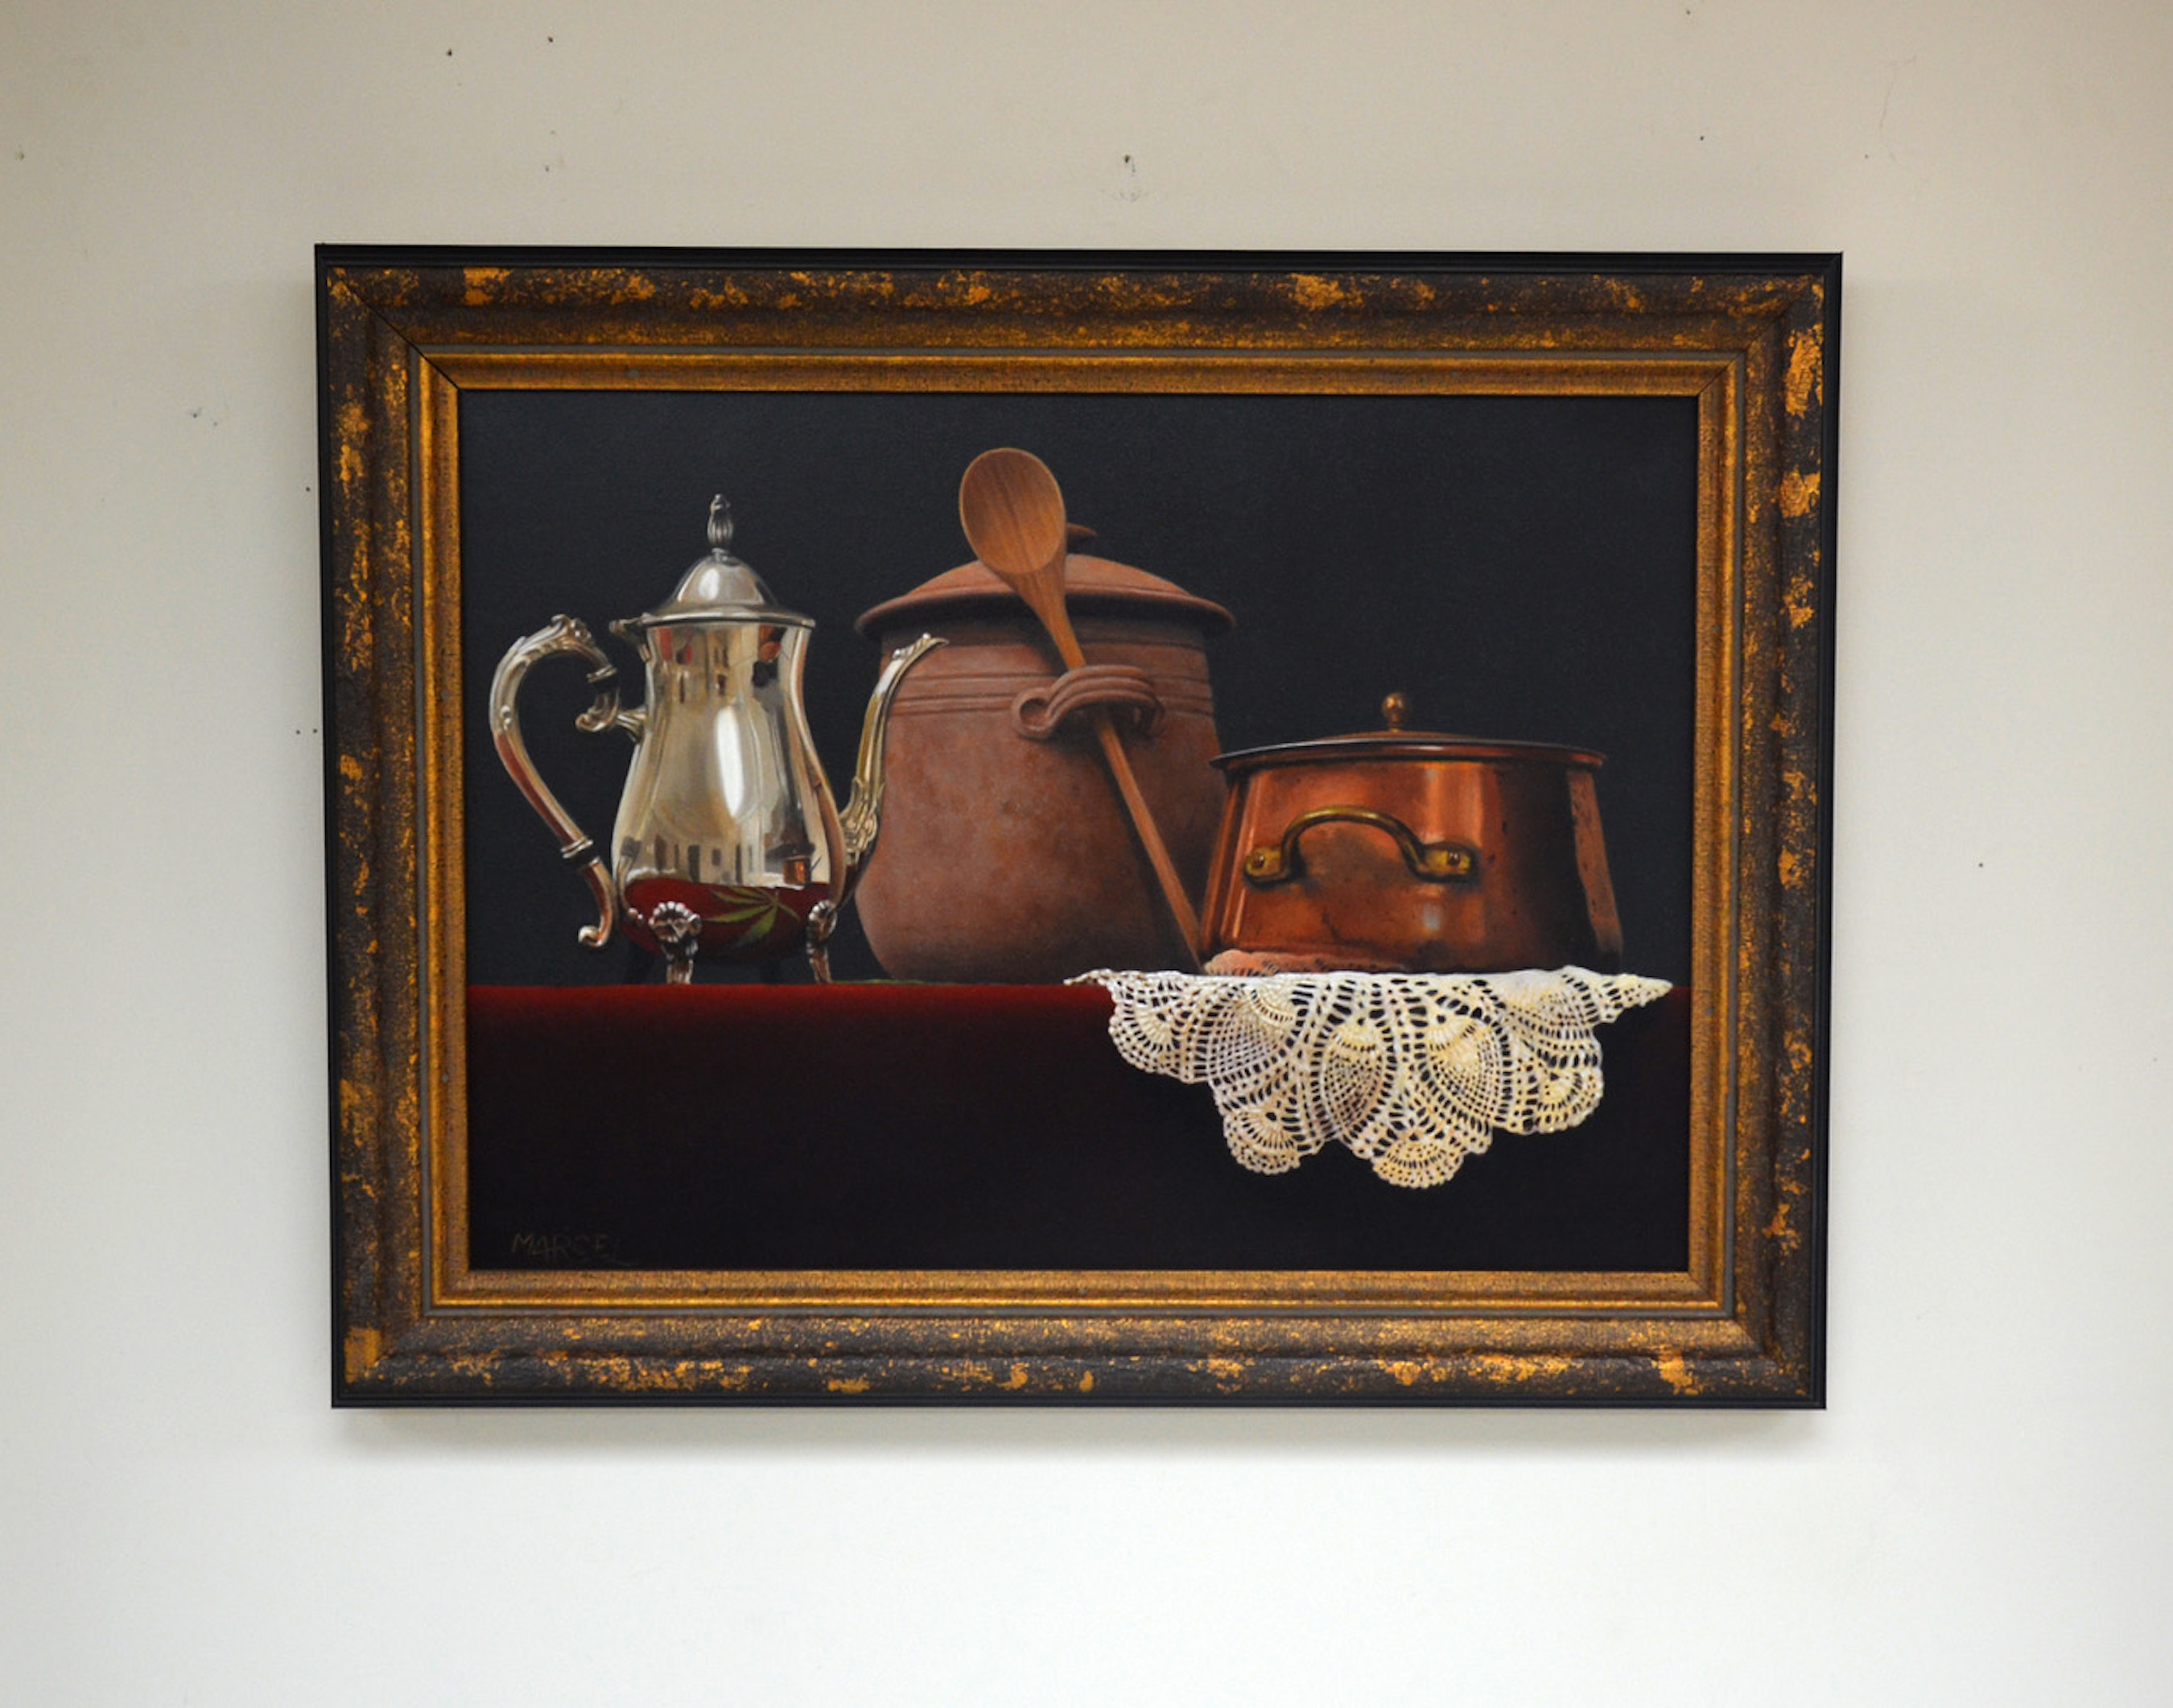 Still Life With Pot in room